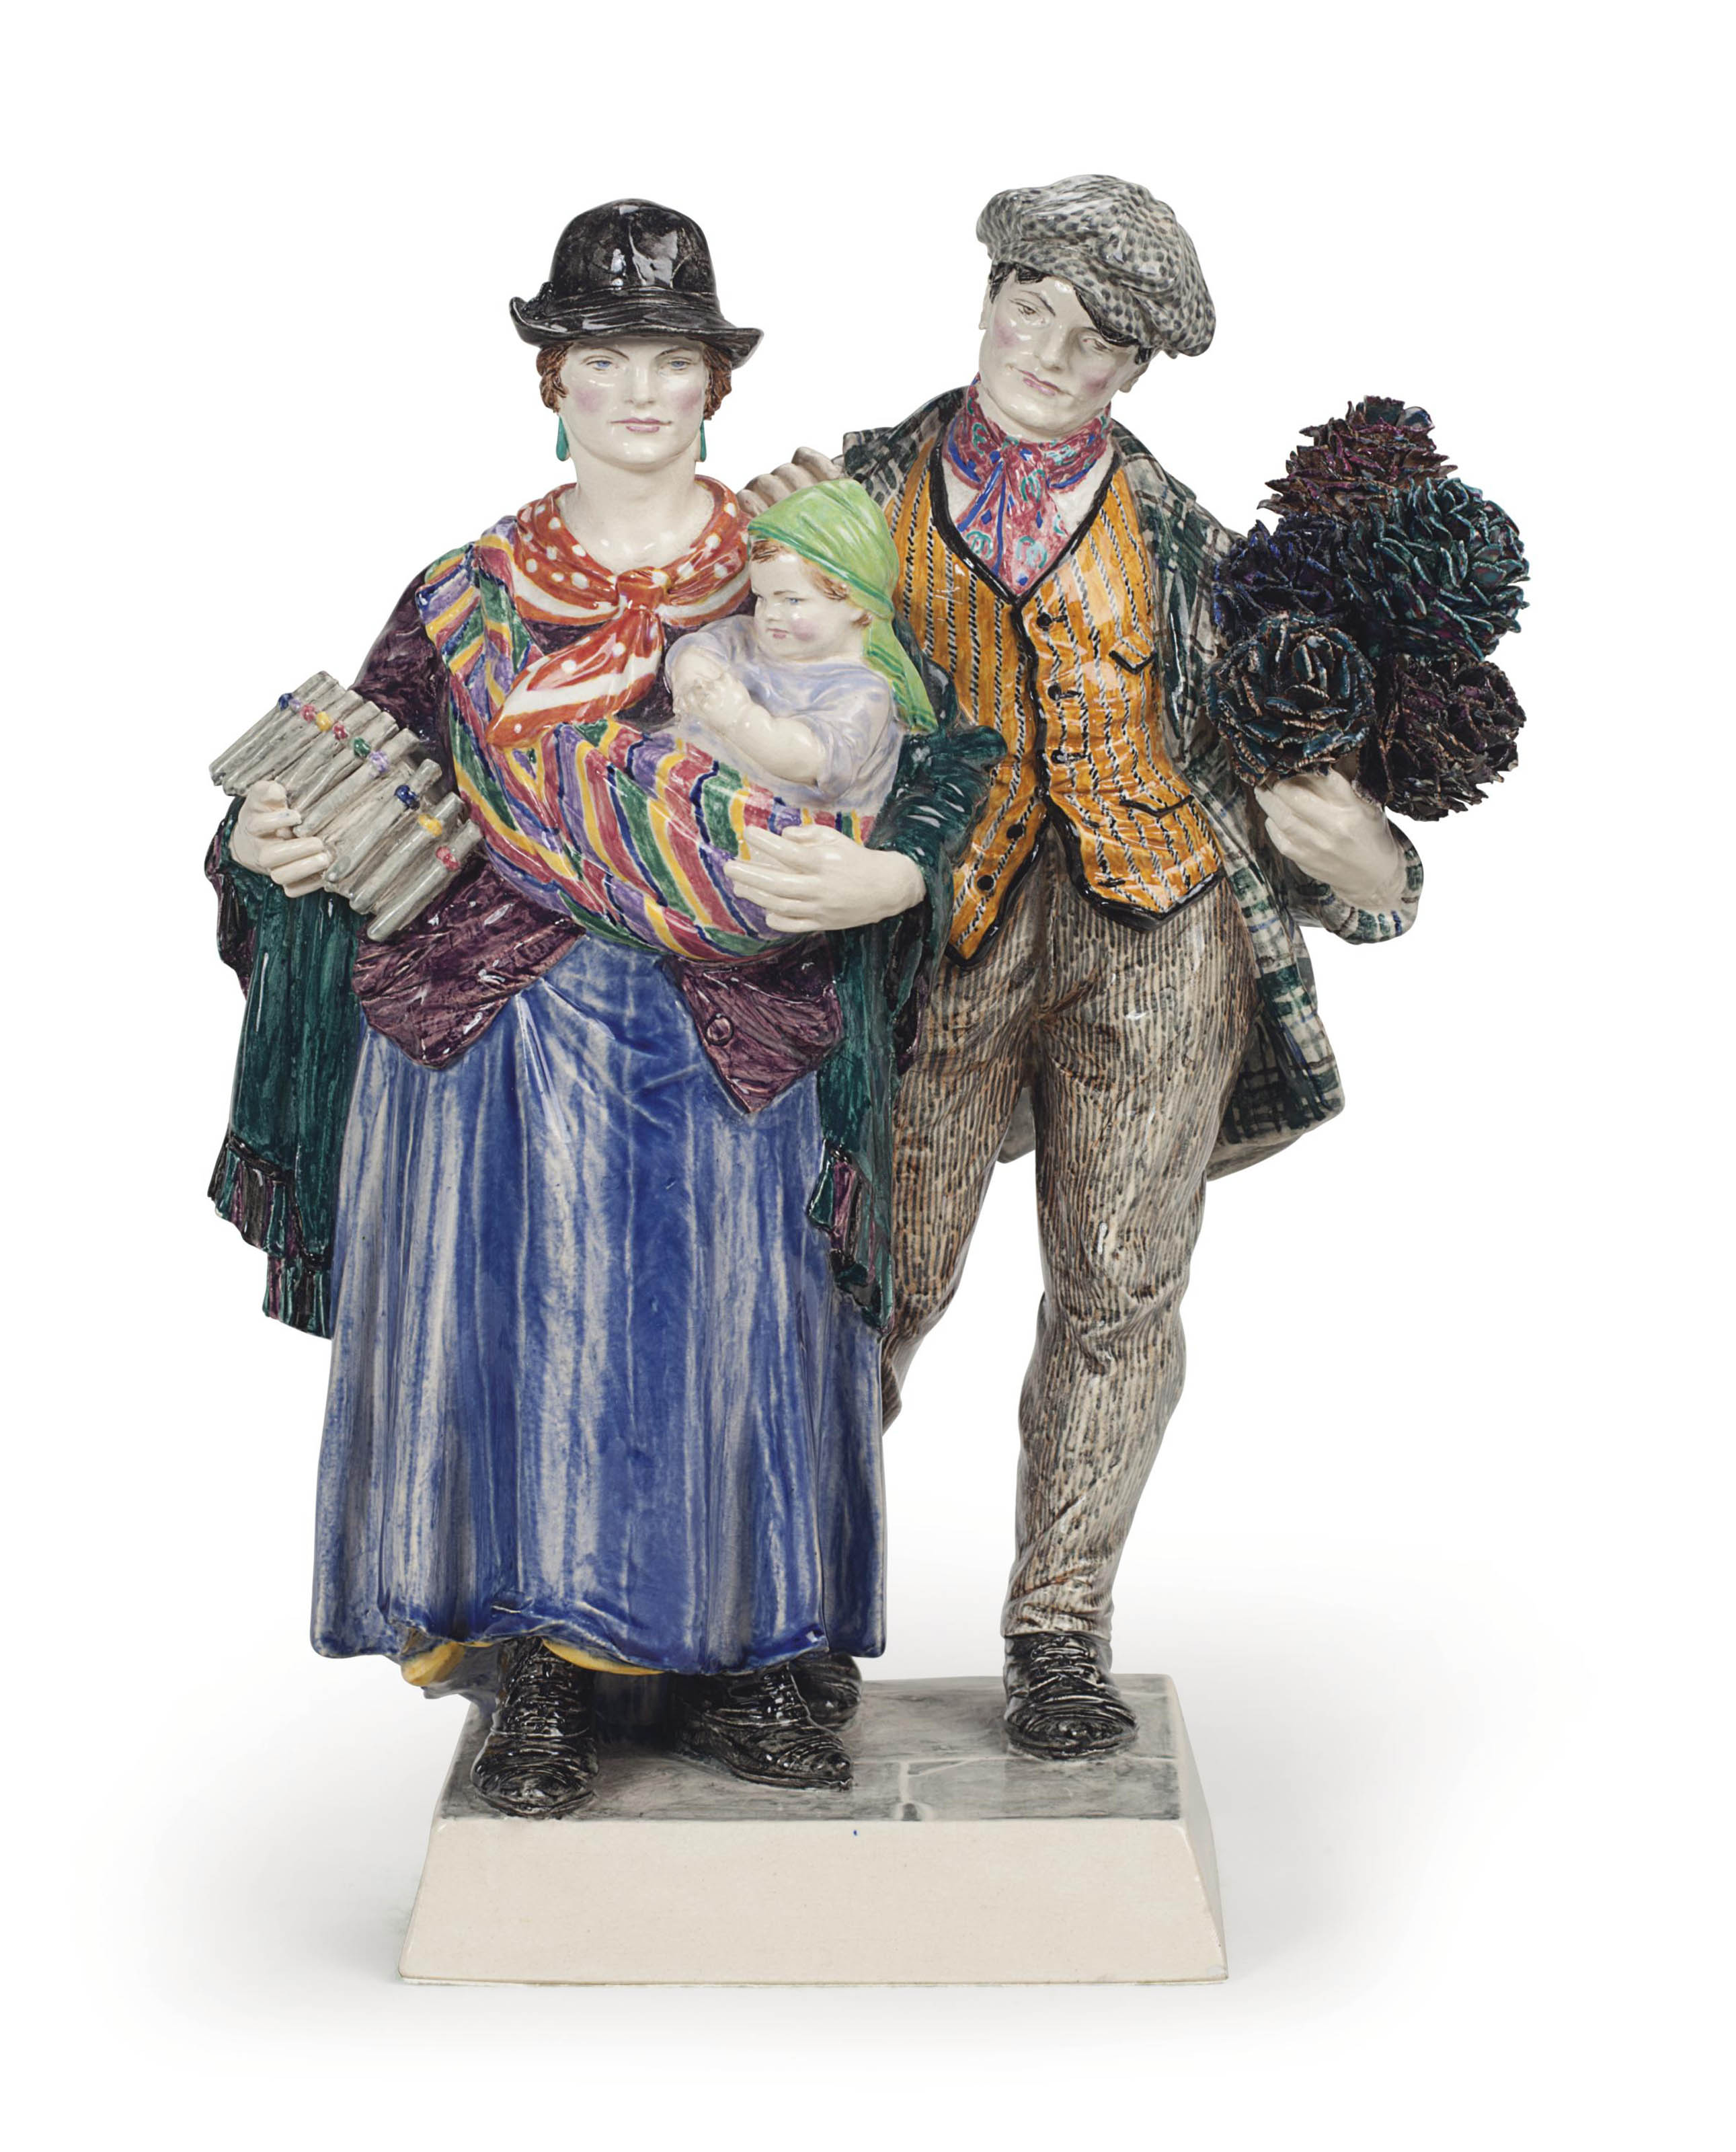 'THE GYPSIES', A POTTERY GROUP BY CHARLES VYSE